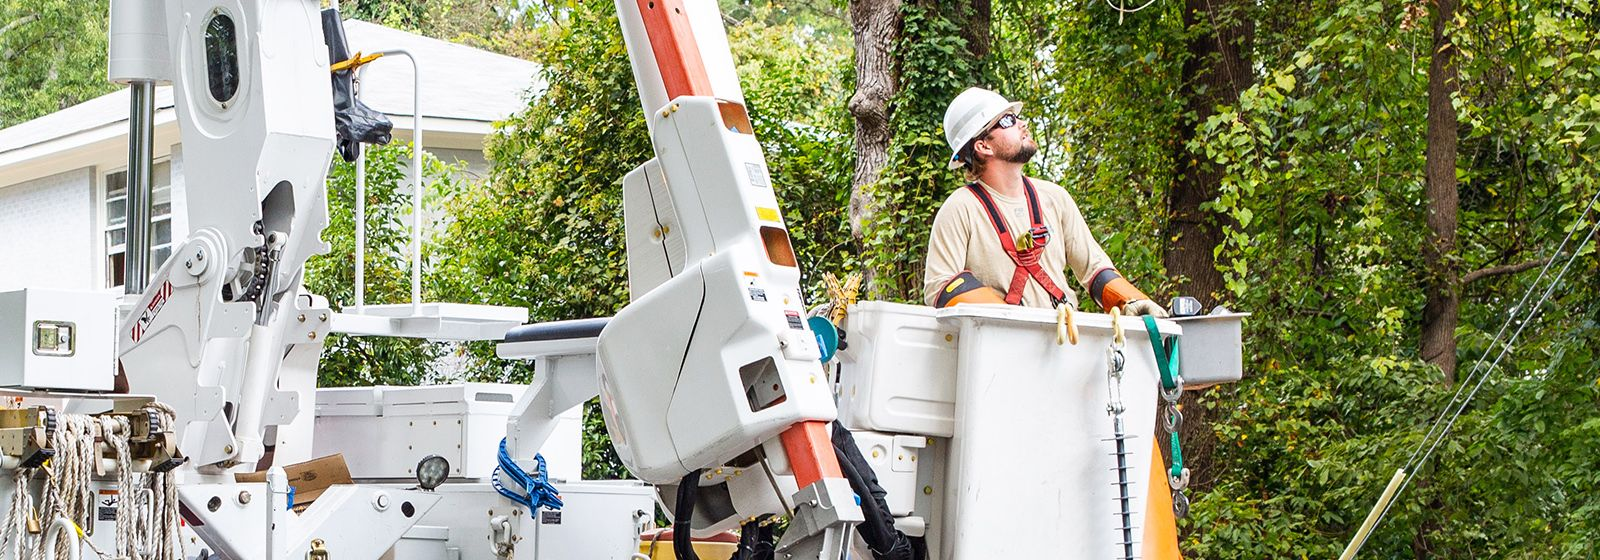 Electrification makes bucket trucks cleaner, quieter